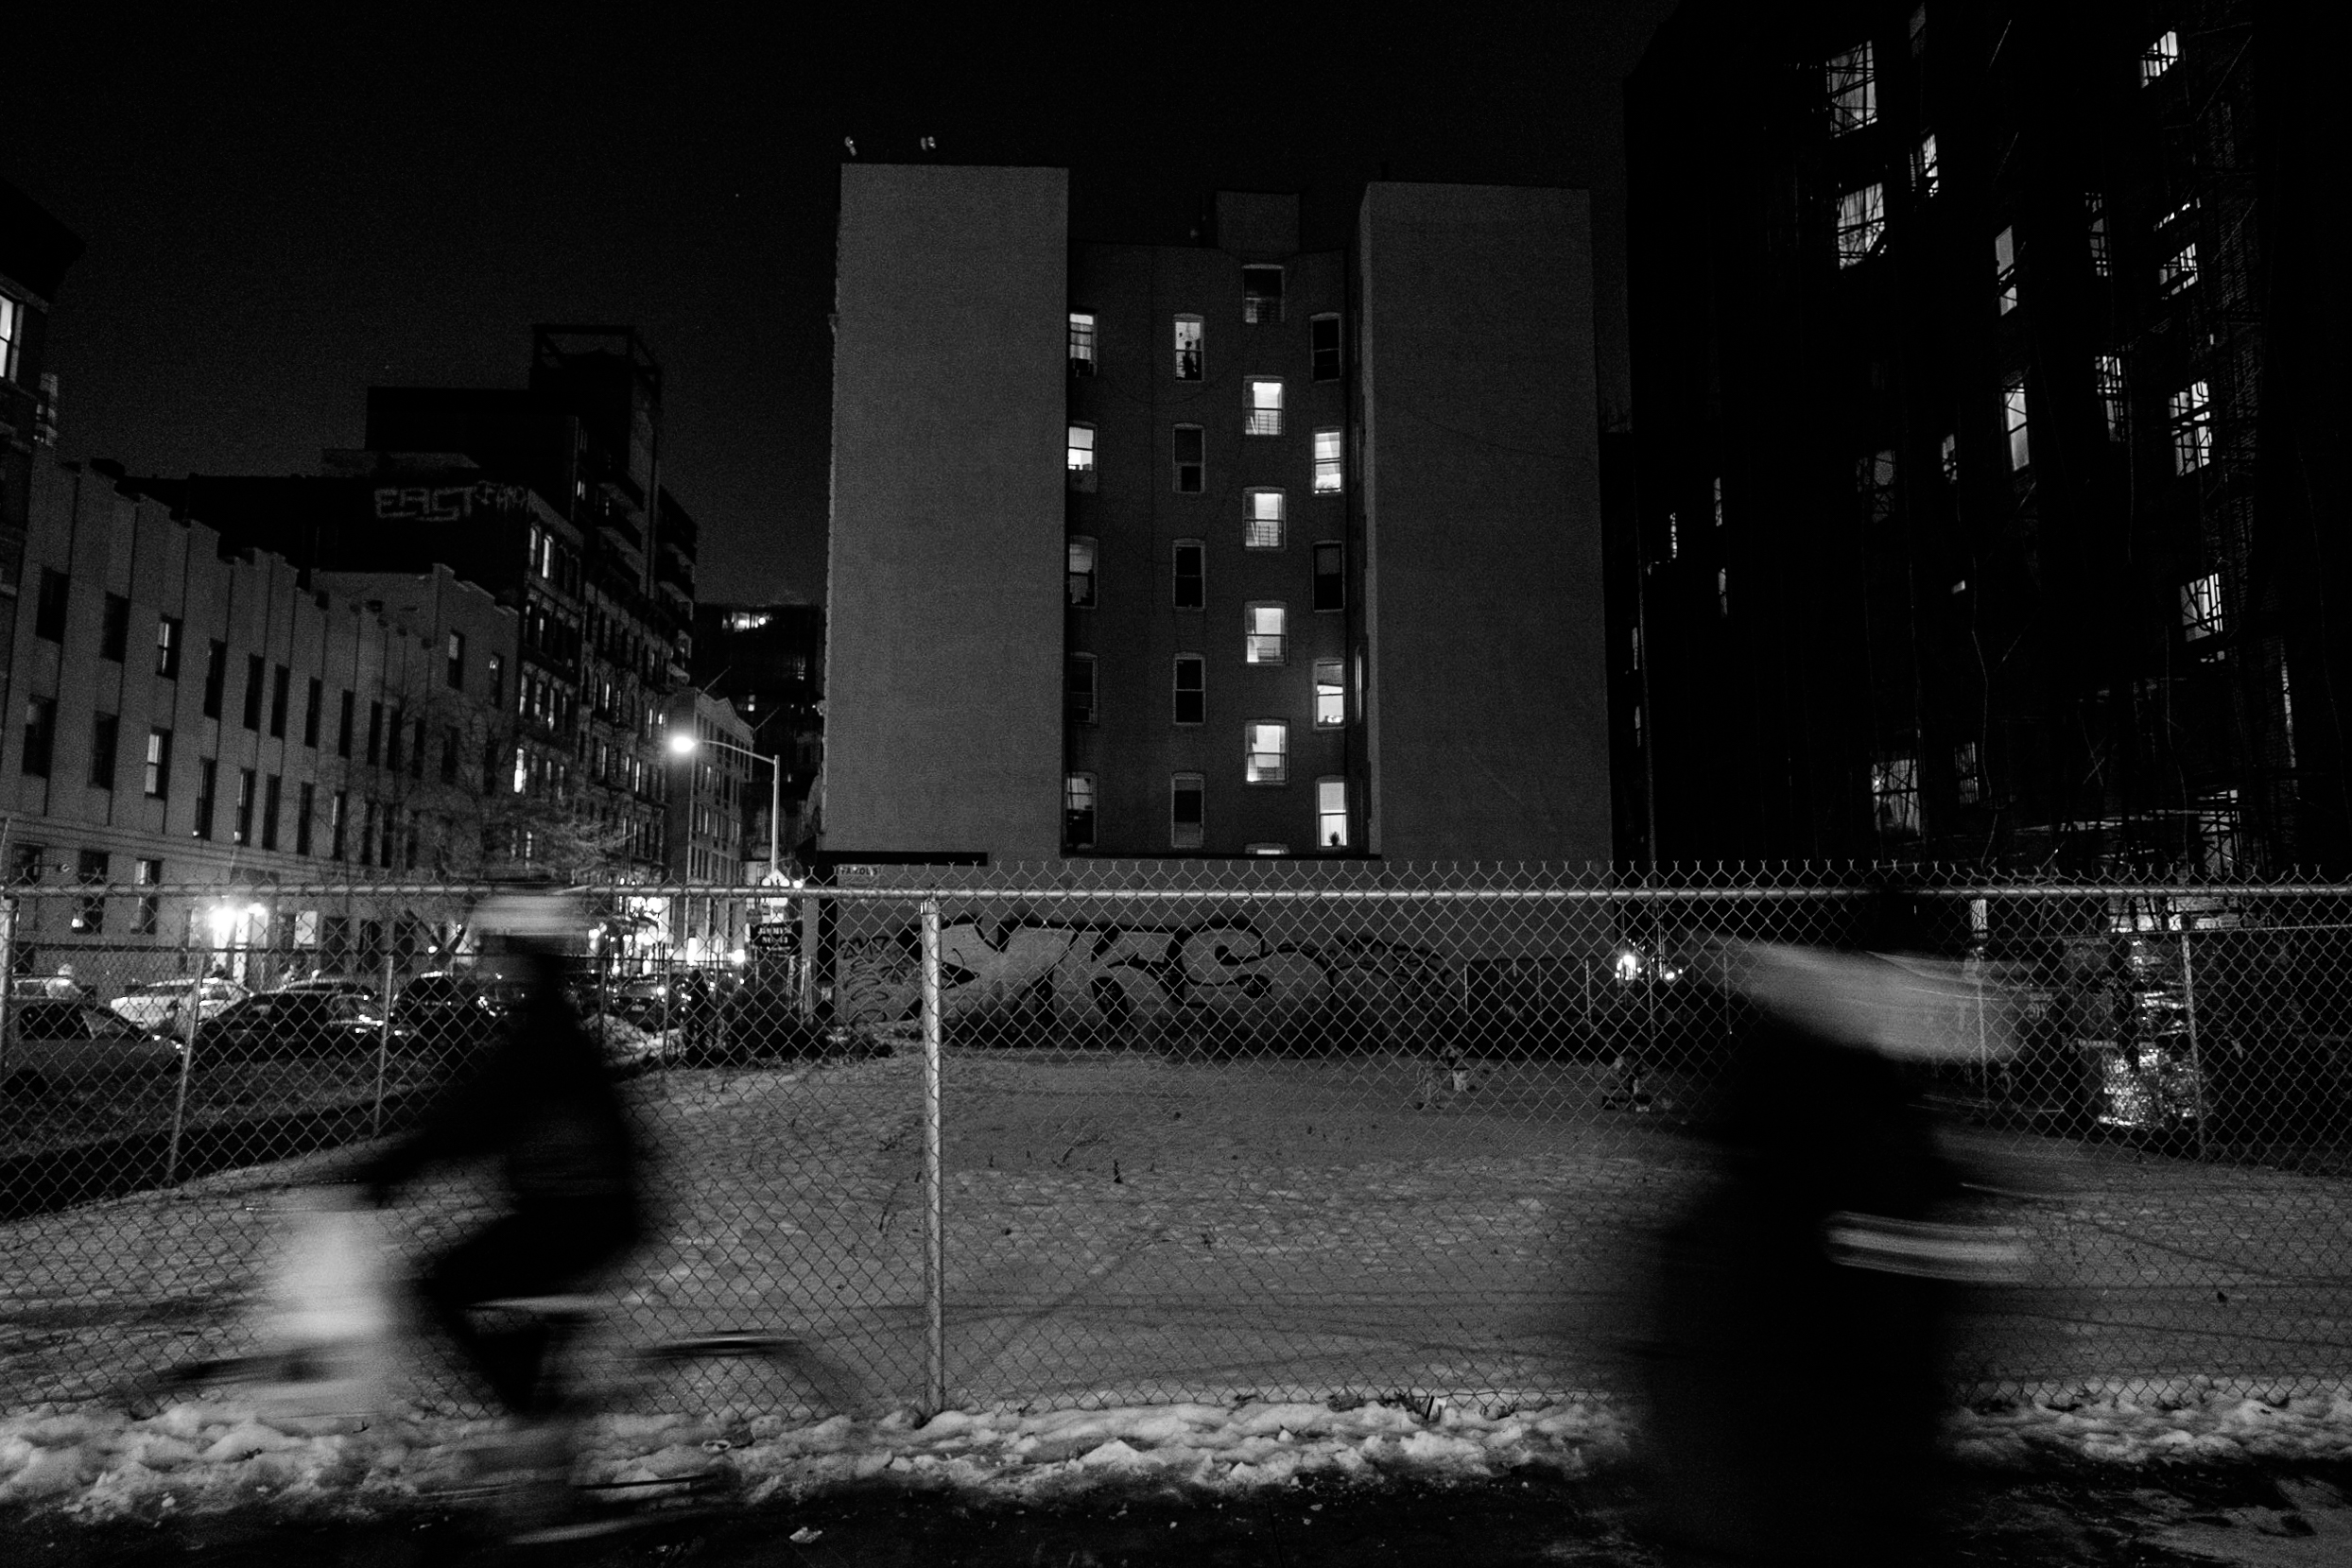 east-village-manhattan-night-black-and-white-photography